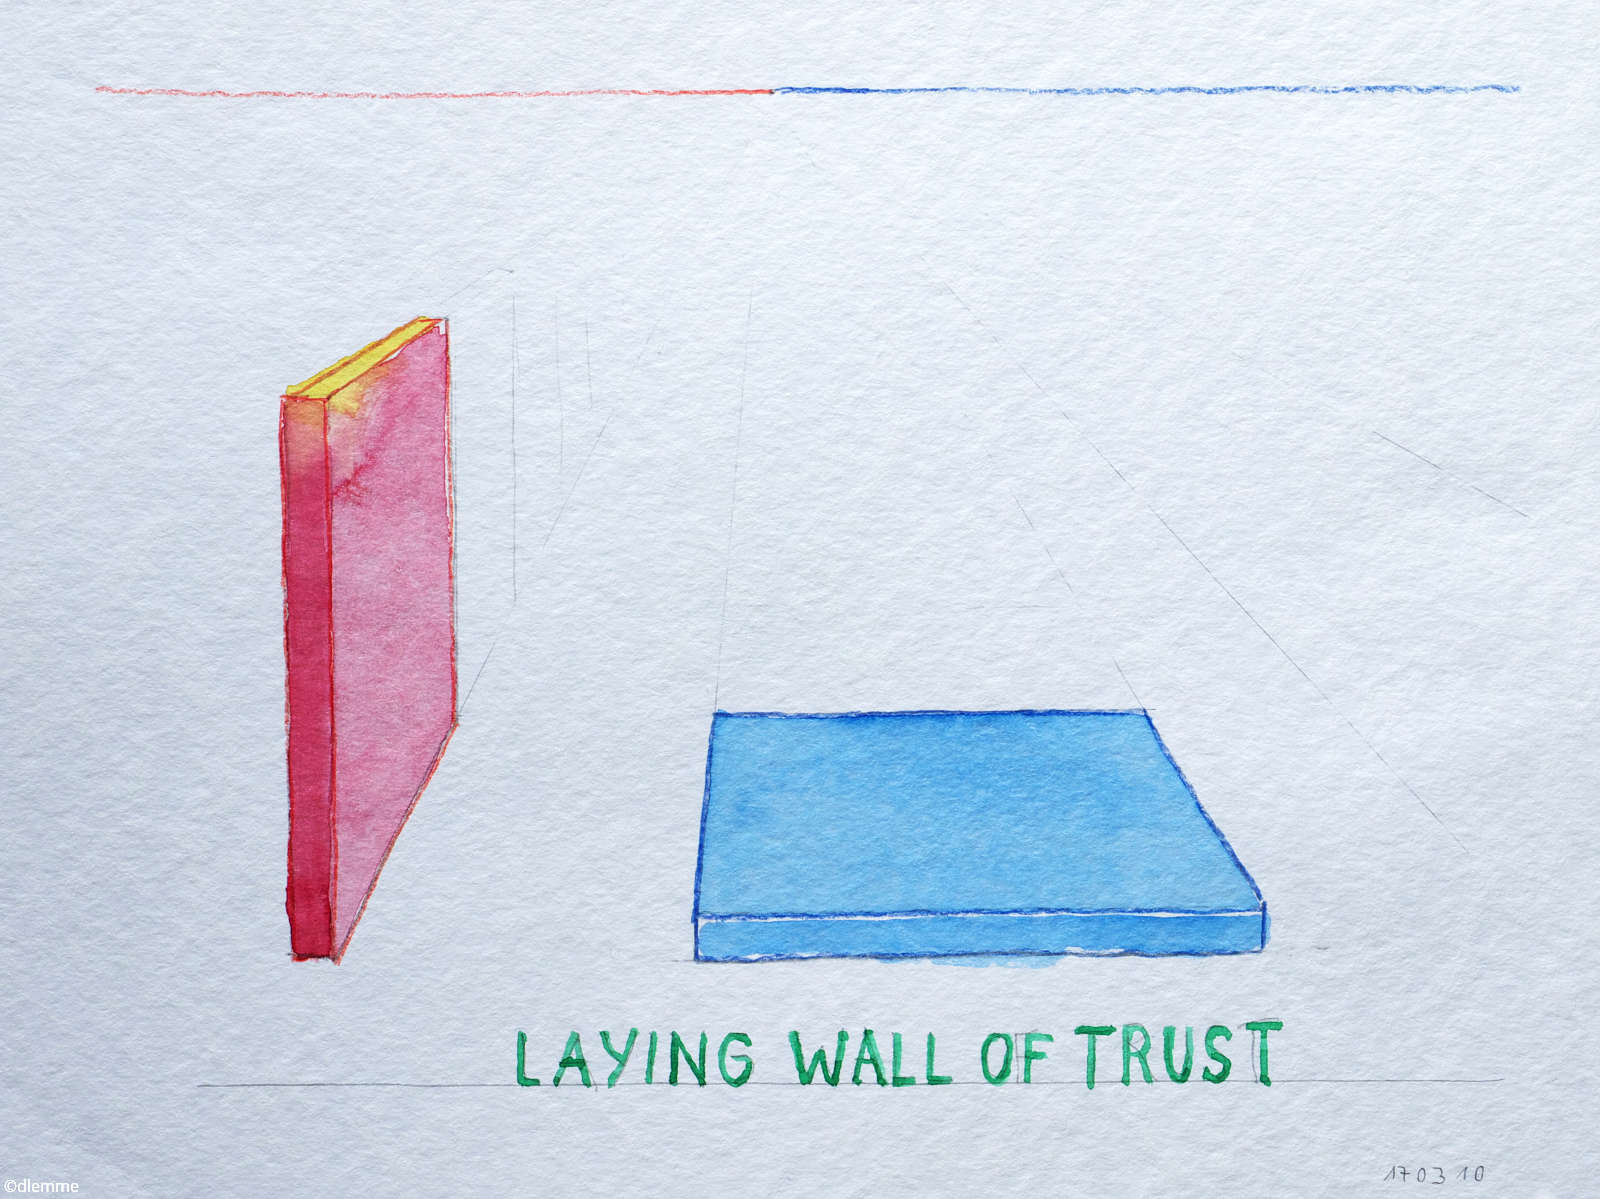 Laying Wall of Trust, Aquarelle, März 2017